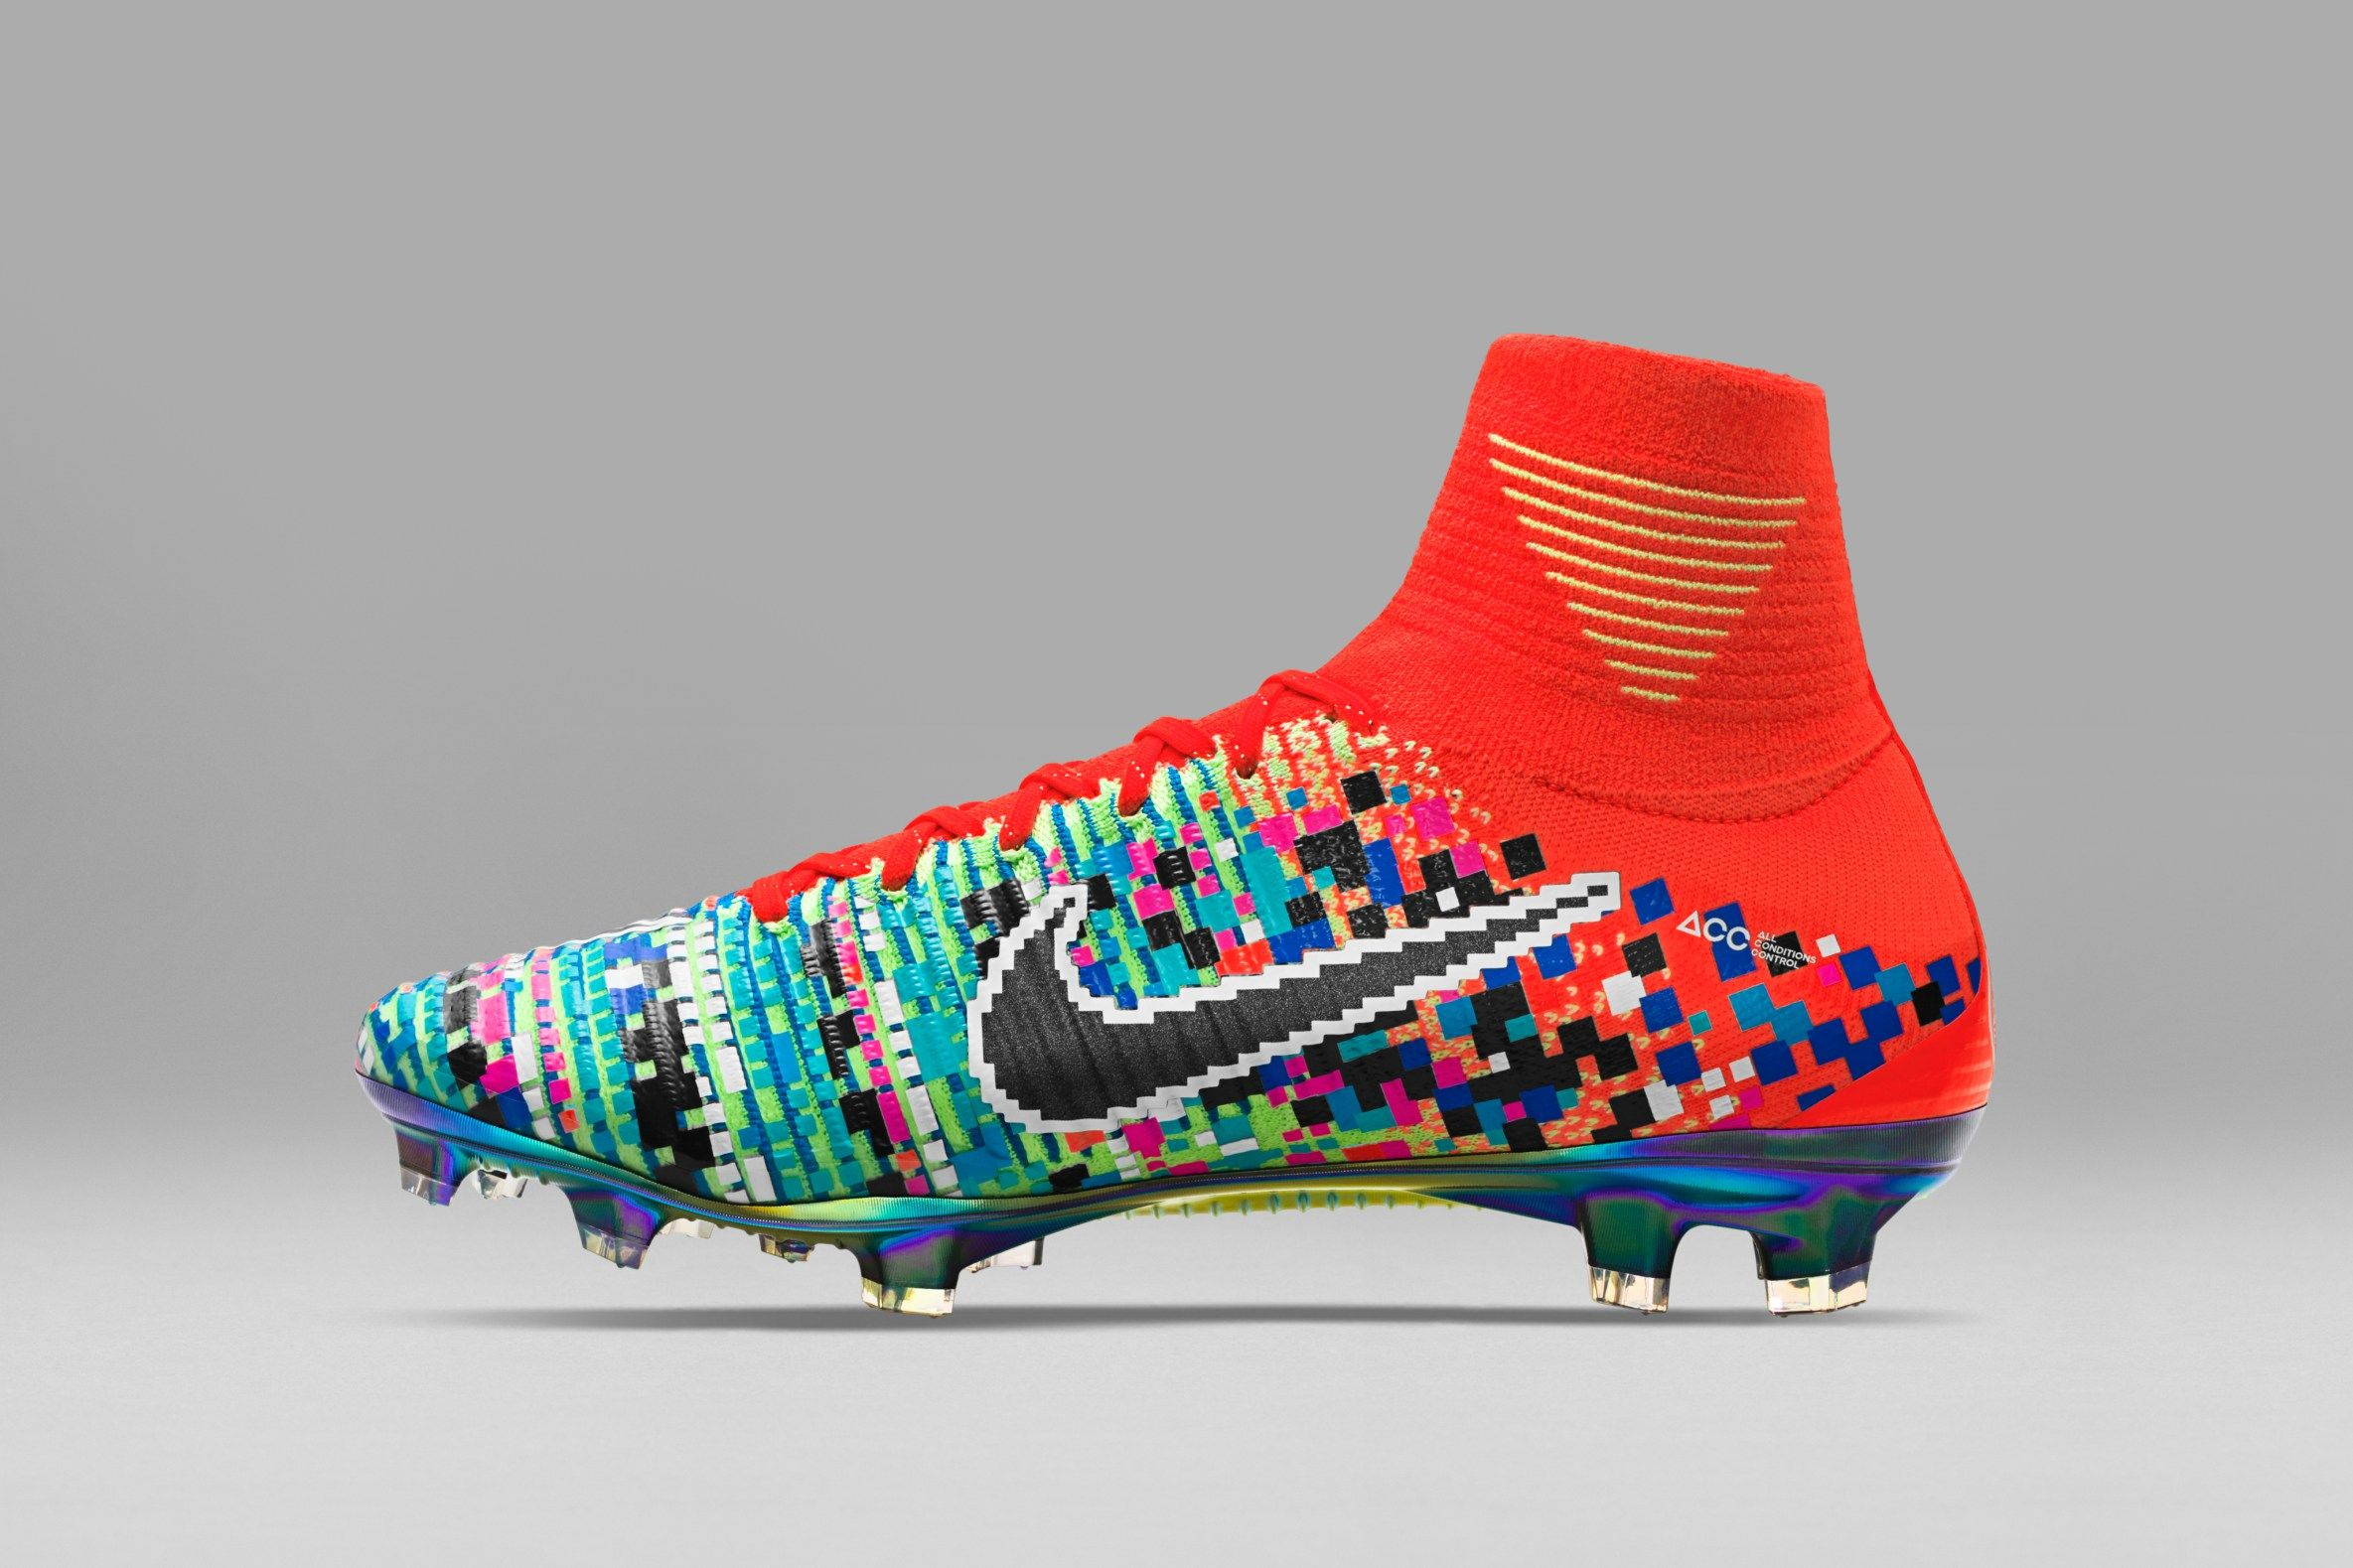 size 40 cdcd7 c694b Check out Nike's Pixelated Mercurial Superfly x EA Sports ...